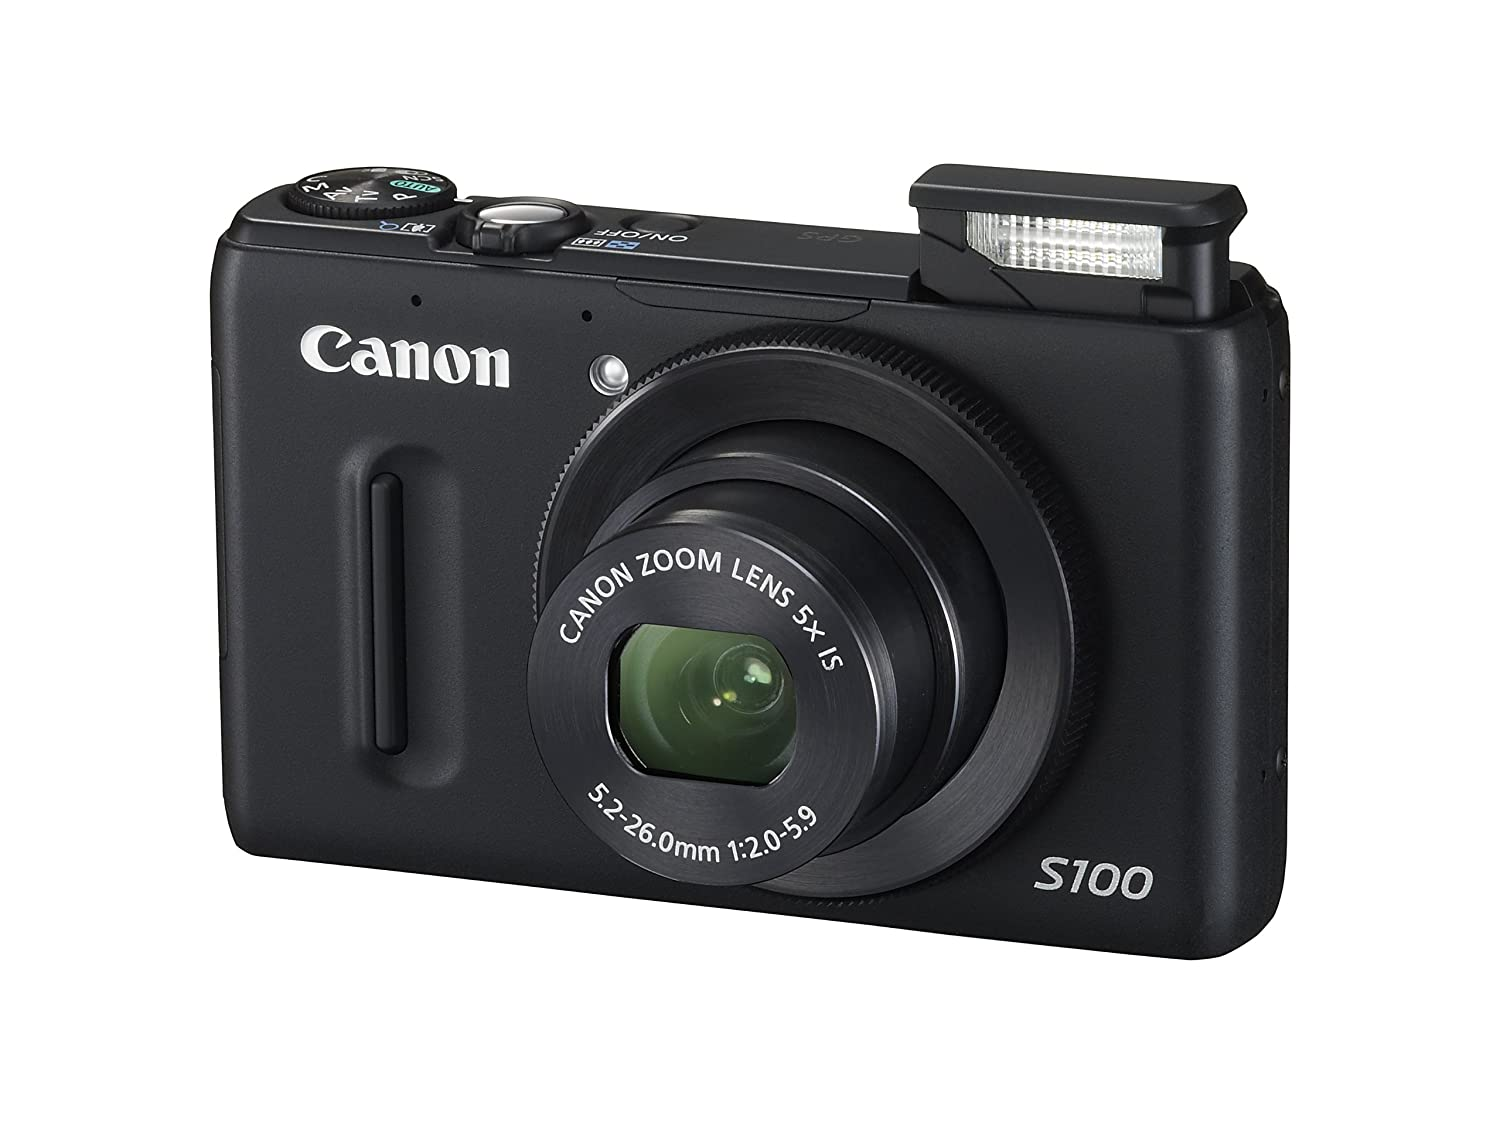 Canon PowerShot S100 12.1 MP Digital Camera with 5x Wide-Angle Optical Image Stabilized Zoom (Black)